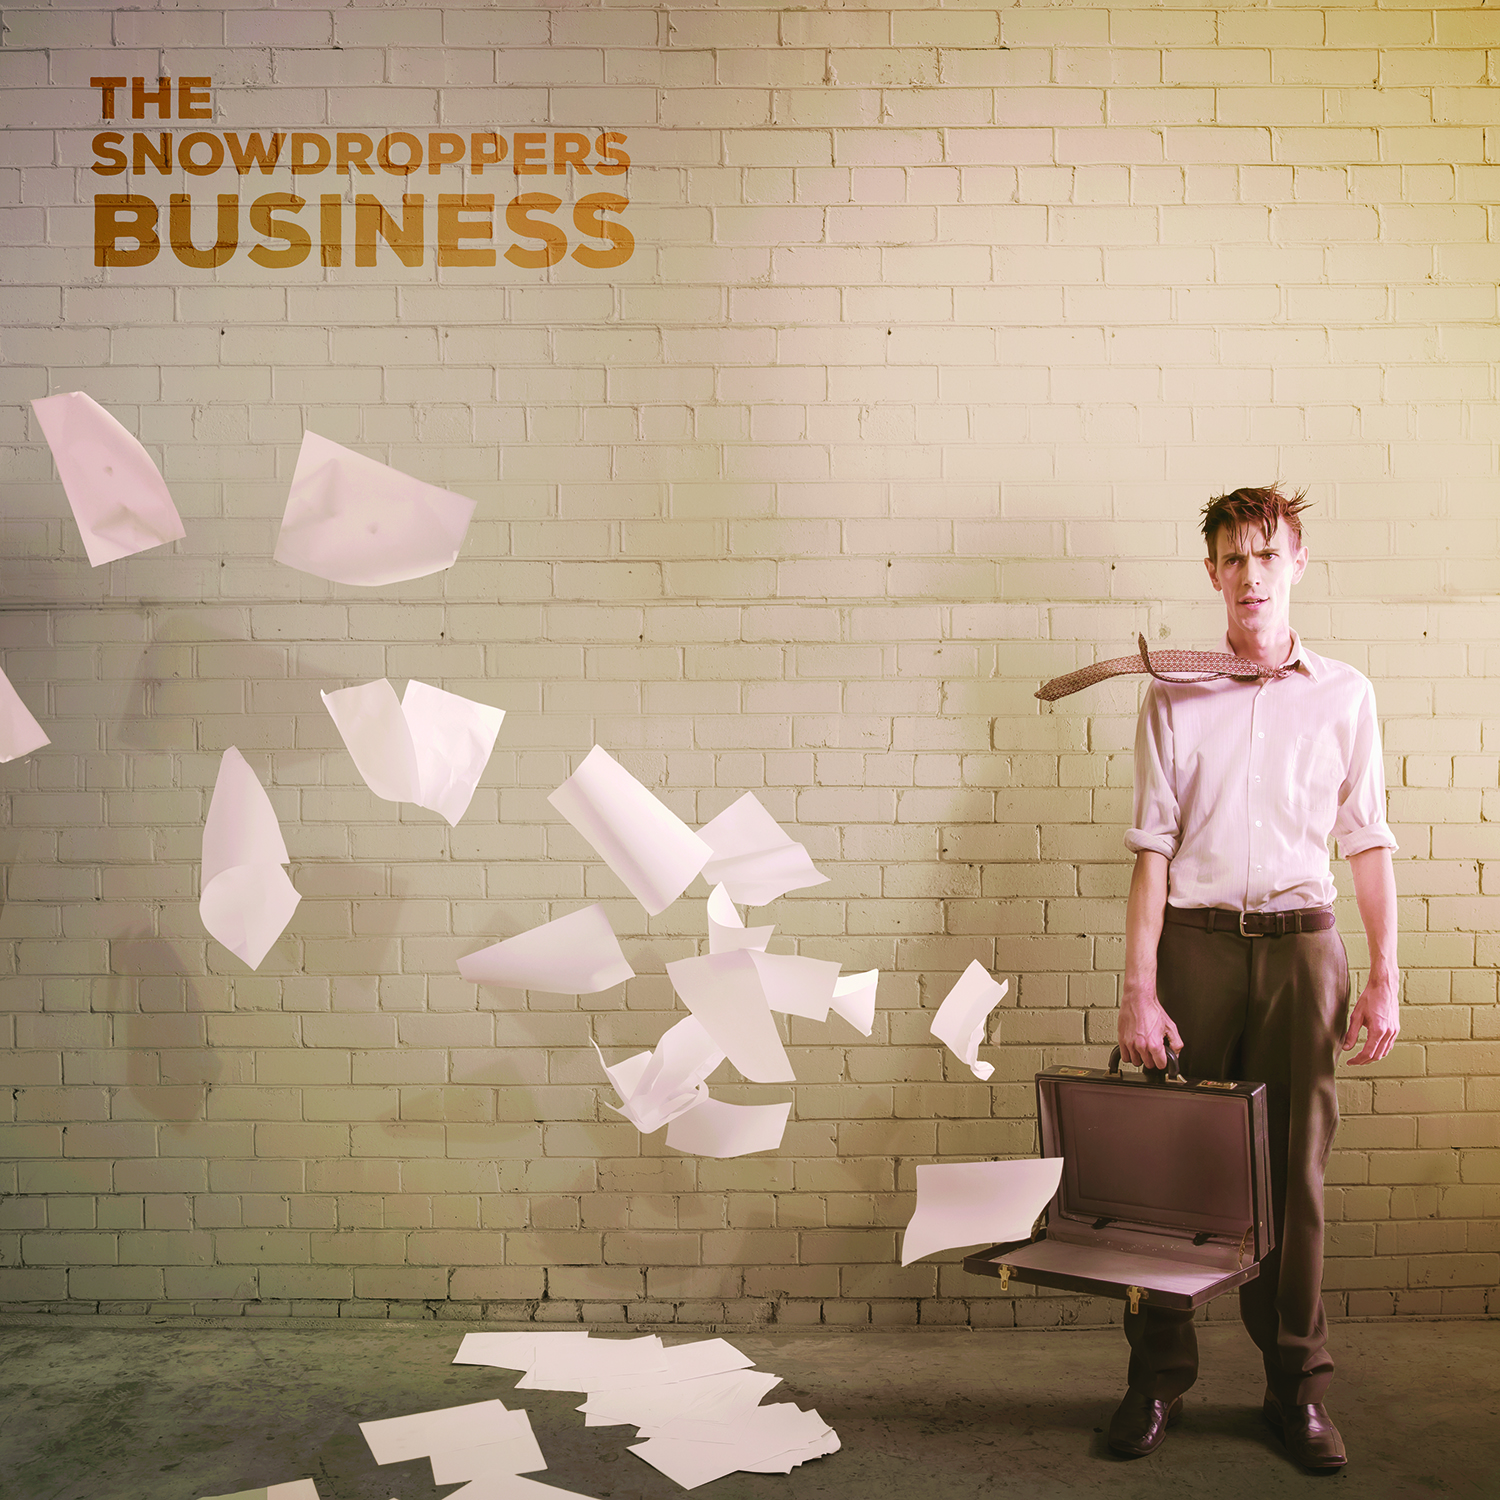 Business (CD) - The Snowdroppers